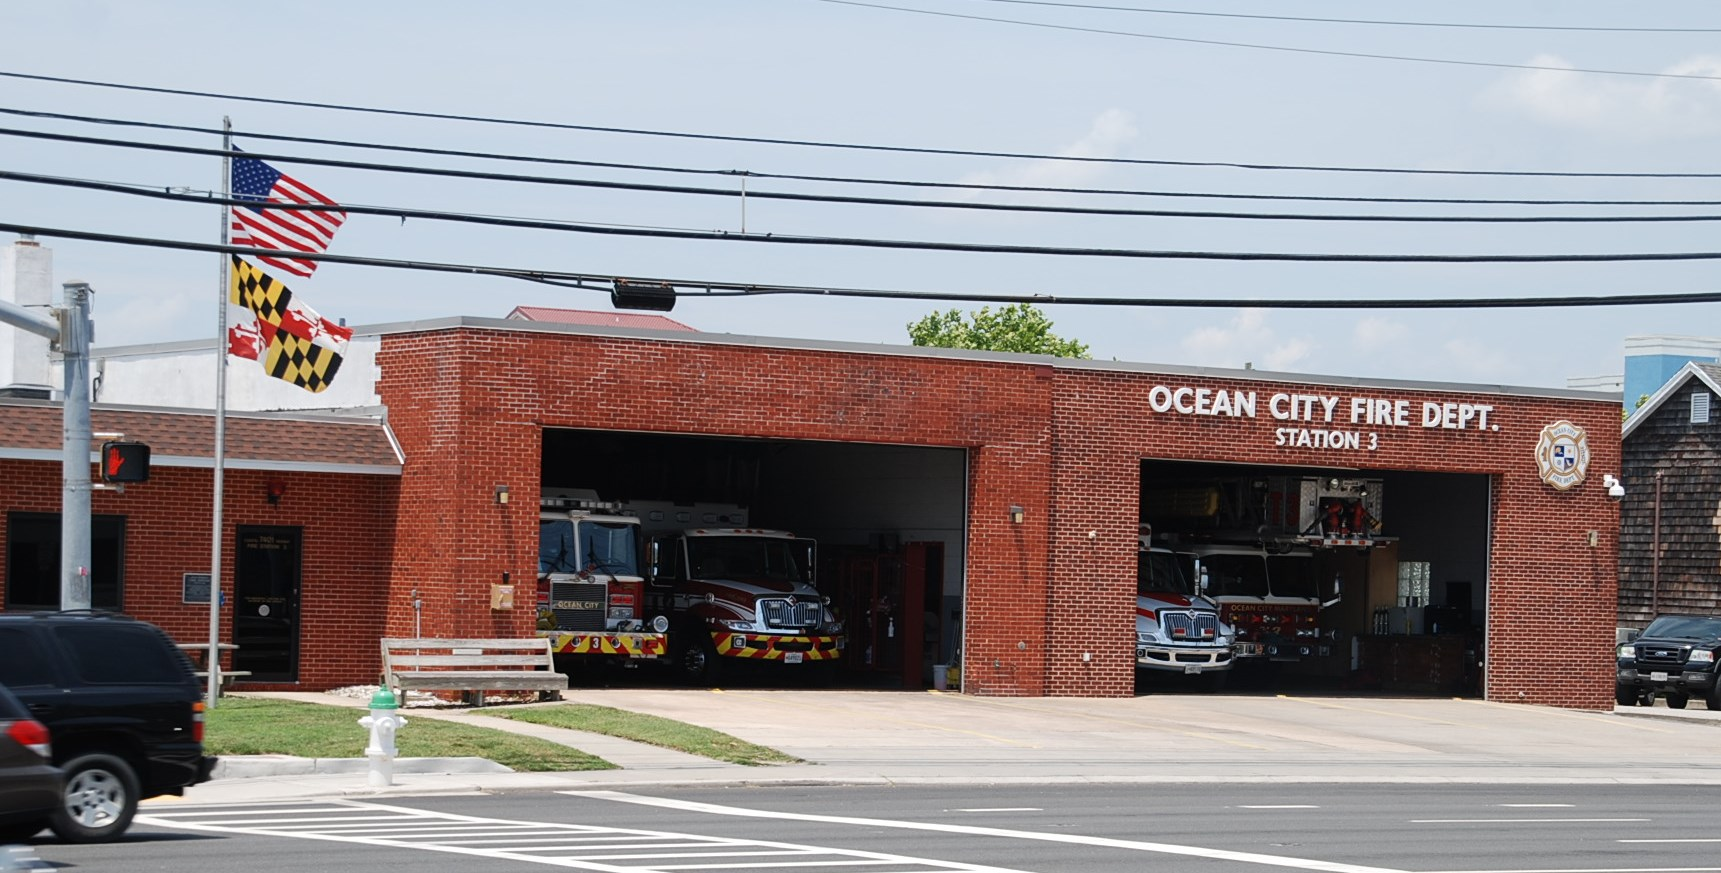 Ocean City Council Votes To Build New Midtown Fire Station On 66th Street; Existing 74th Street Property Would Be Sold Under Plan